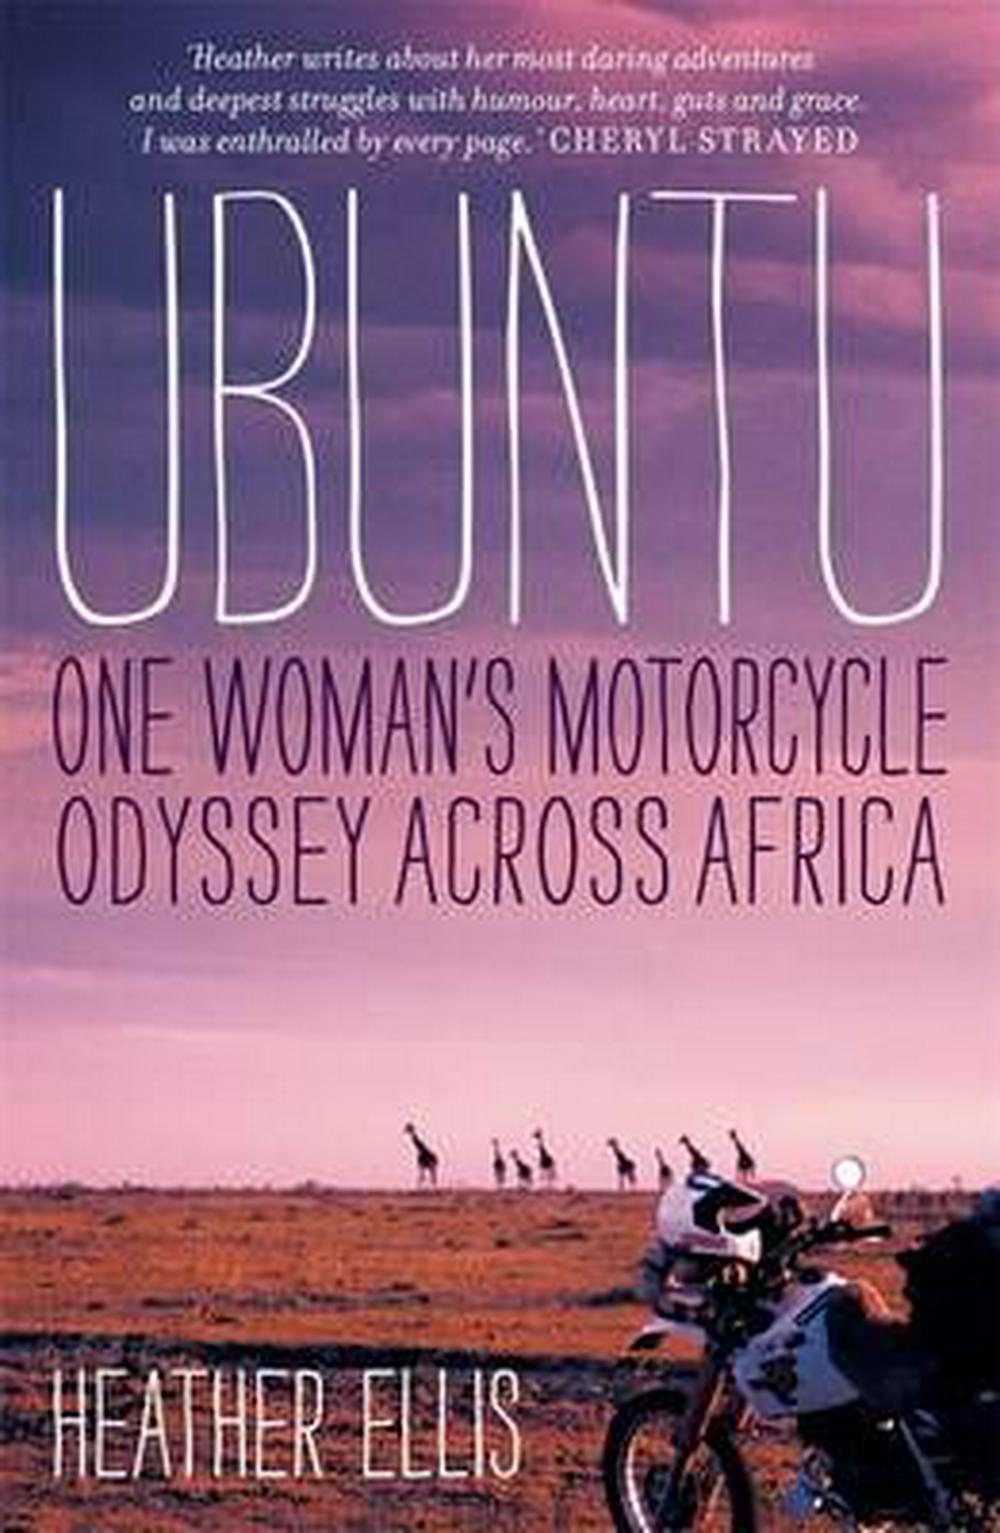 Ubuntu: One Woman's Motorcycle Odyssey Across Africa by Heather Ellis, ISBN: 9781863958202